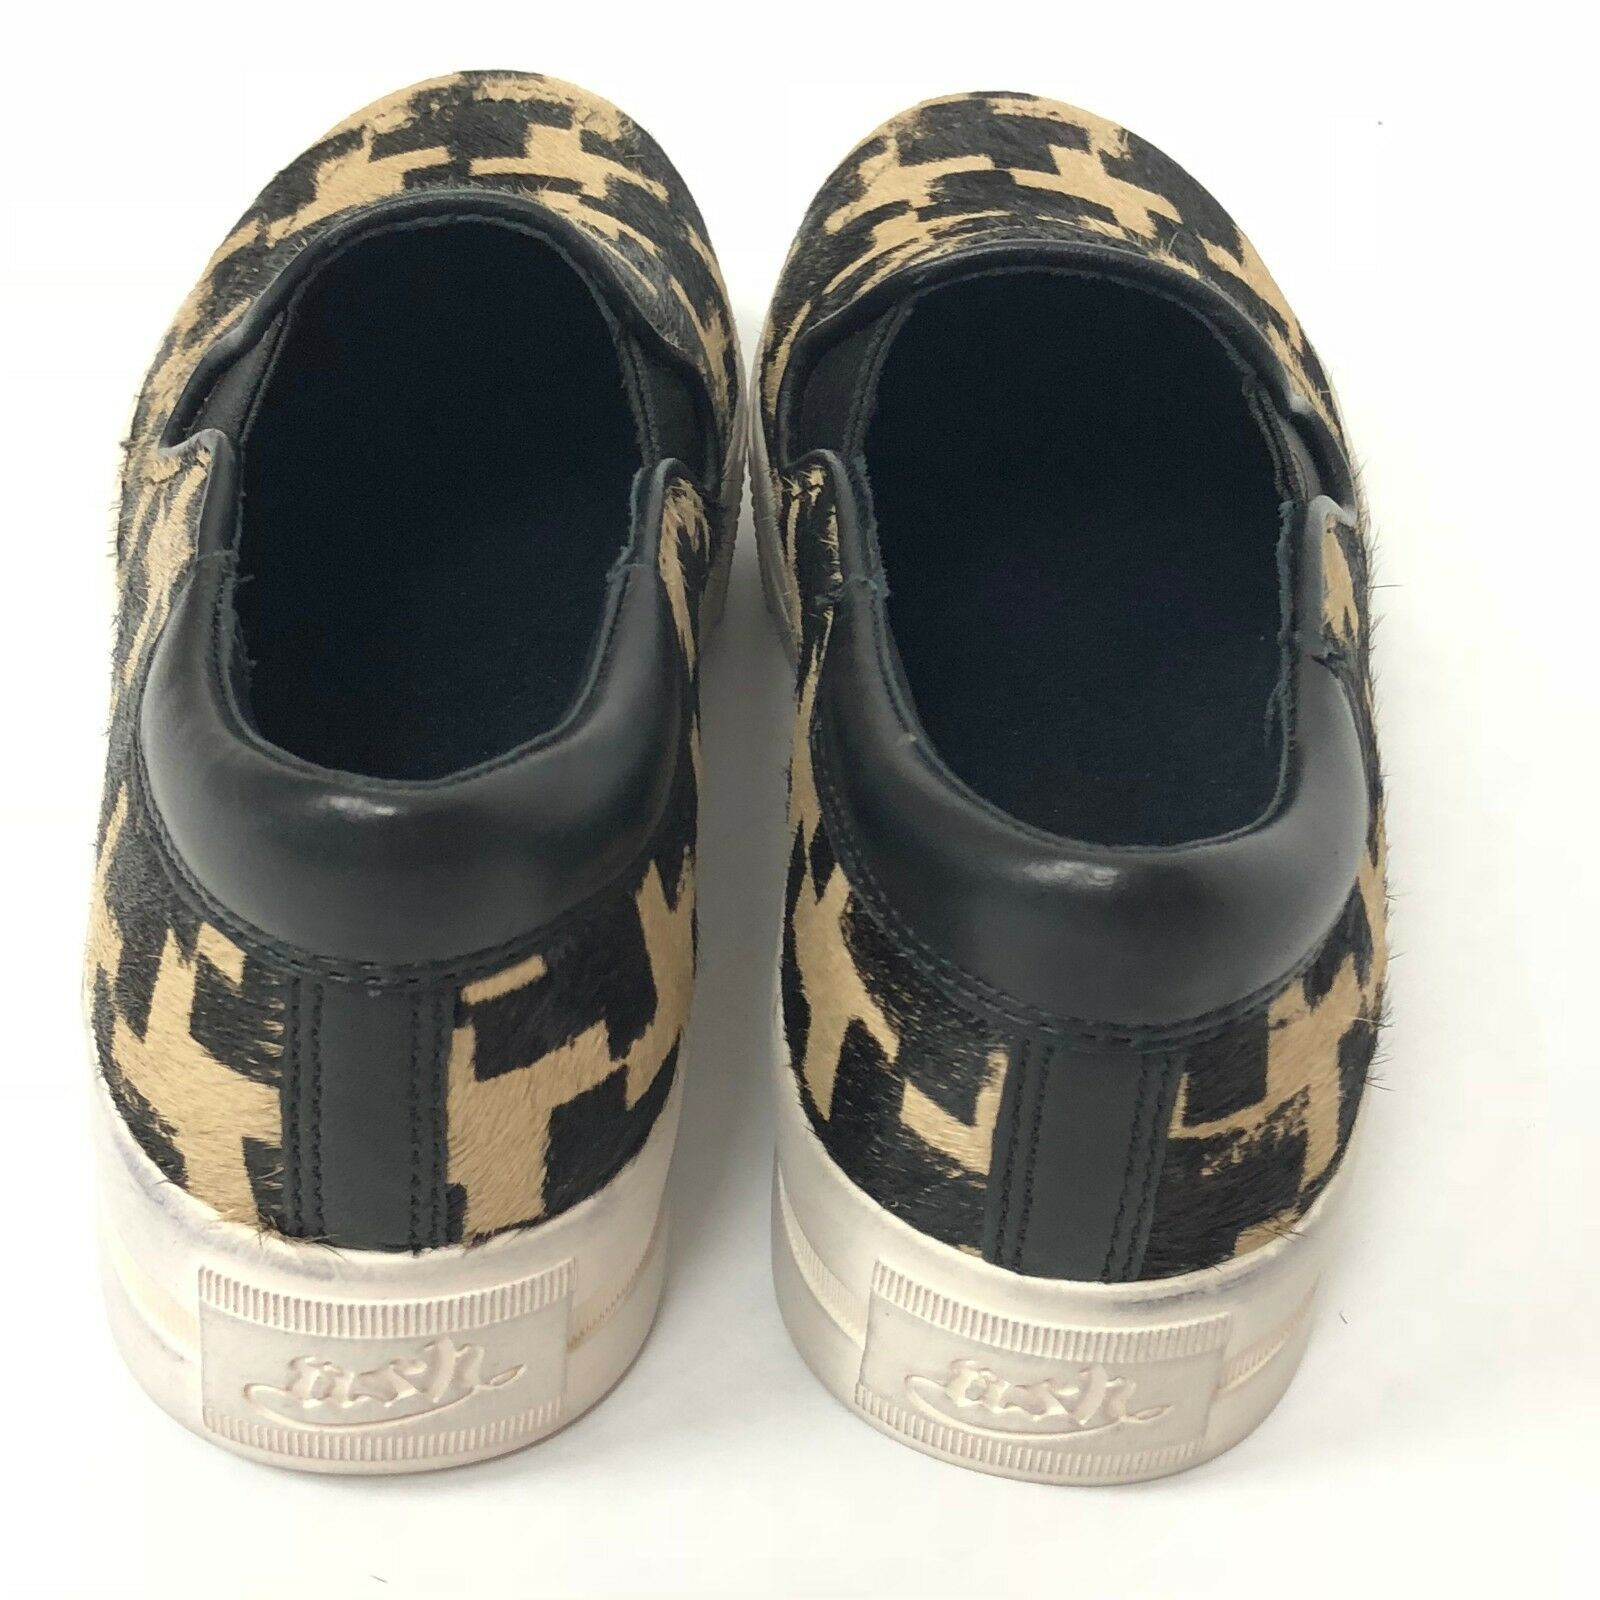 Ash Jam Cow Fur Sneakers Shoes 36 Women Slip On Brown Beige Checkered